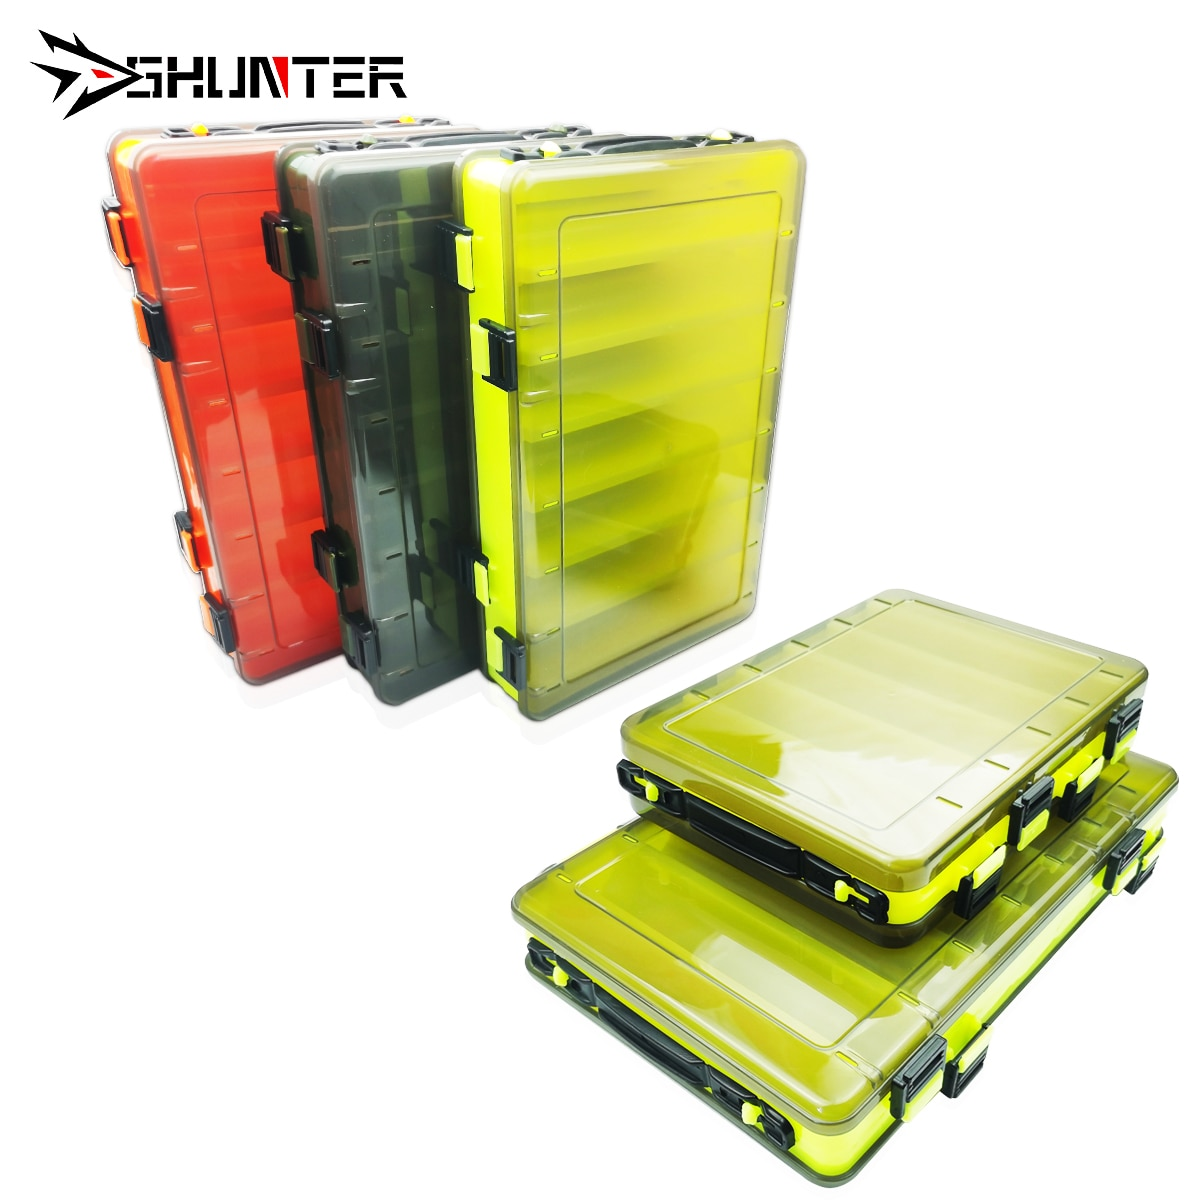 Professional Fishing Tackle Box Double-decker fishing lure tackle box Hook Boxes Portable Bait Fishing Gear Storage Box